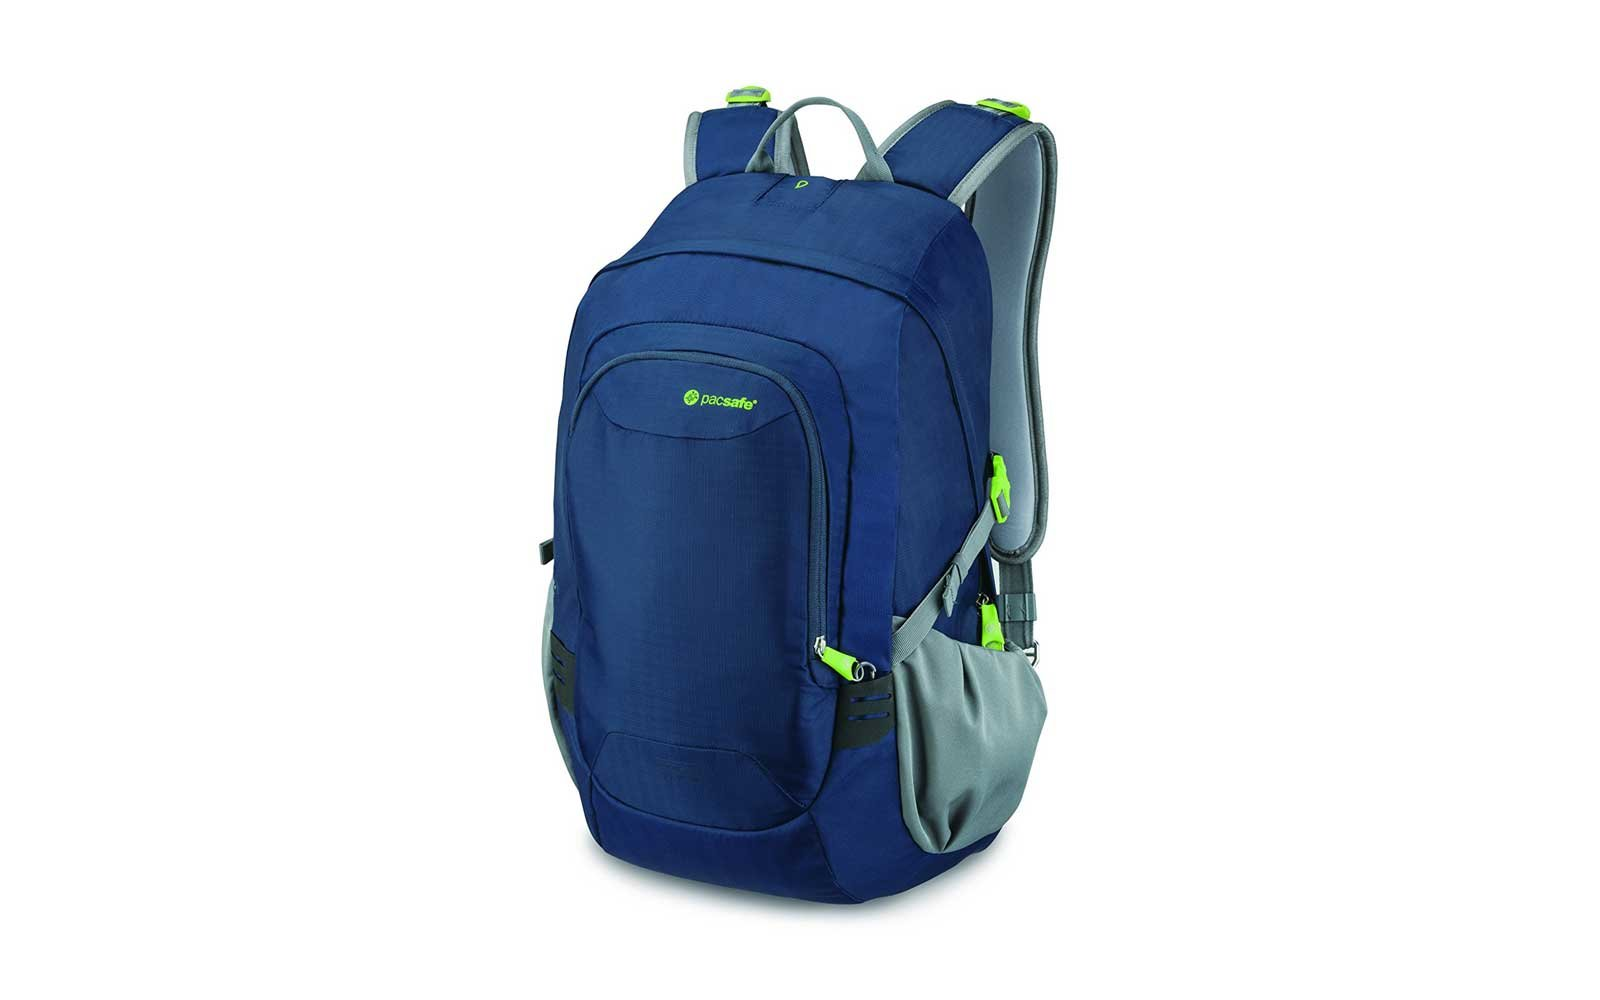 Pacsafe Venture Safe Large Backpack